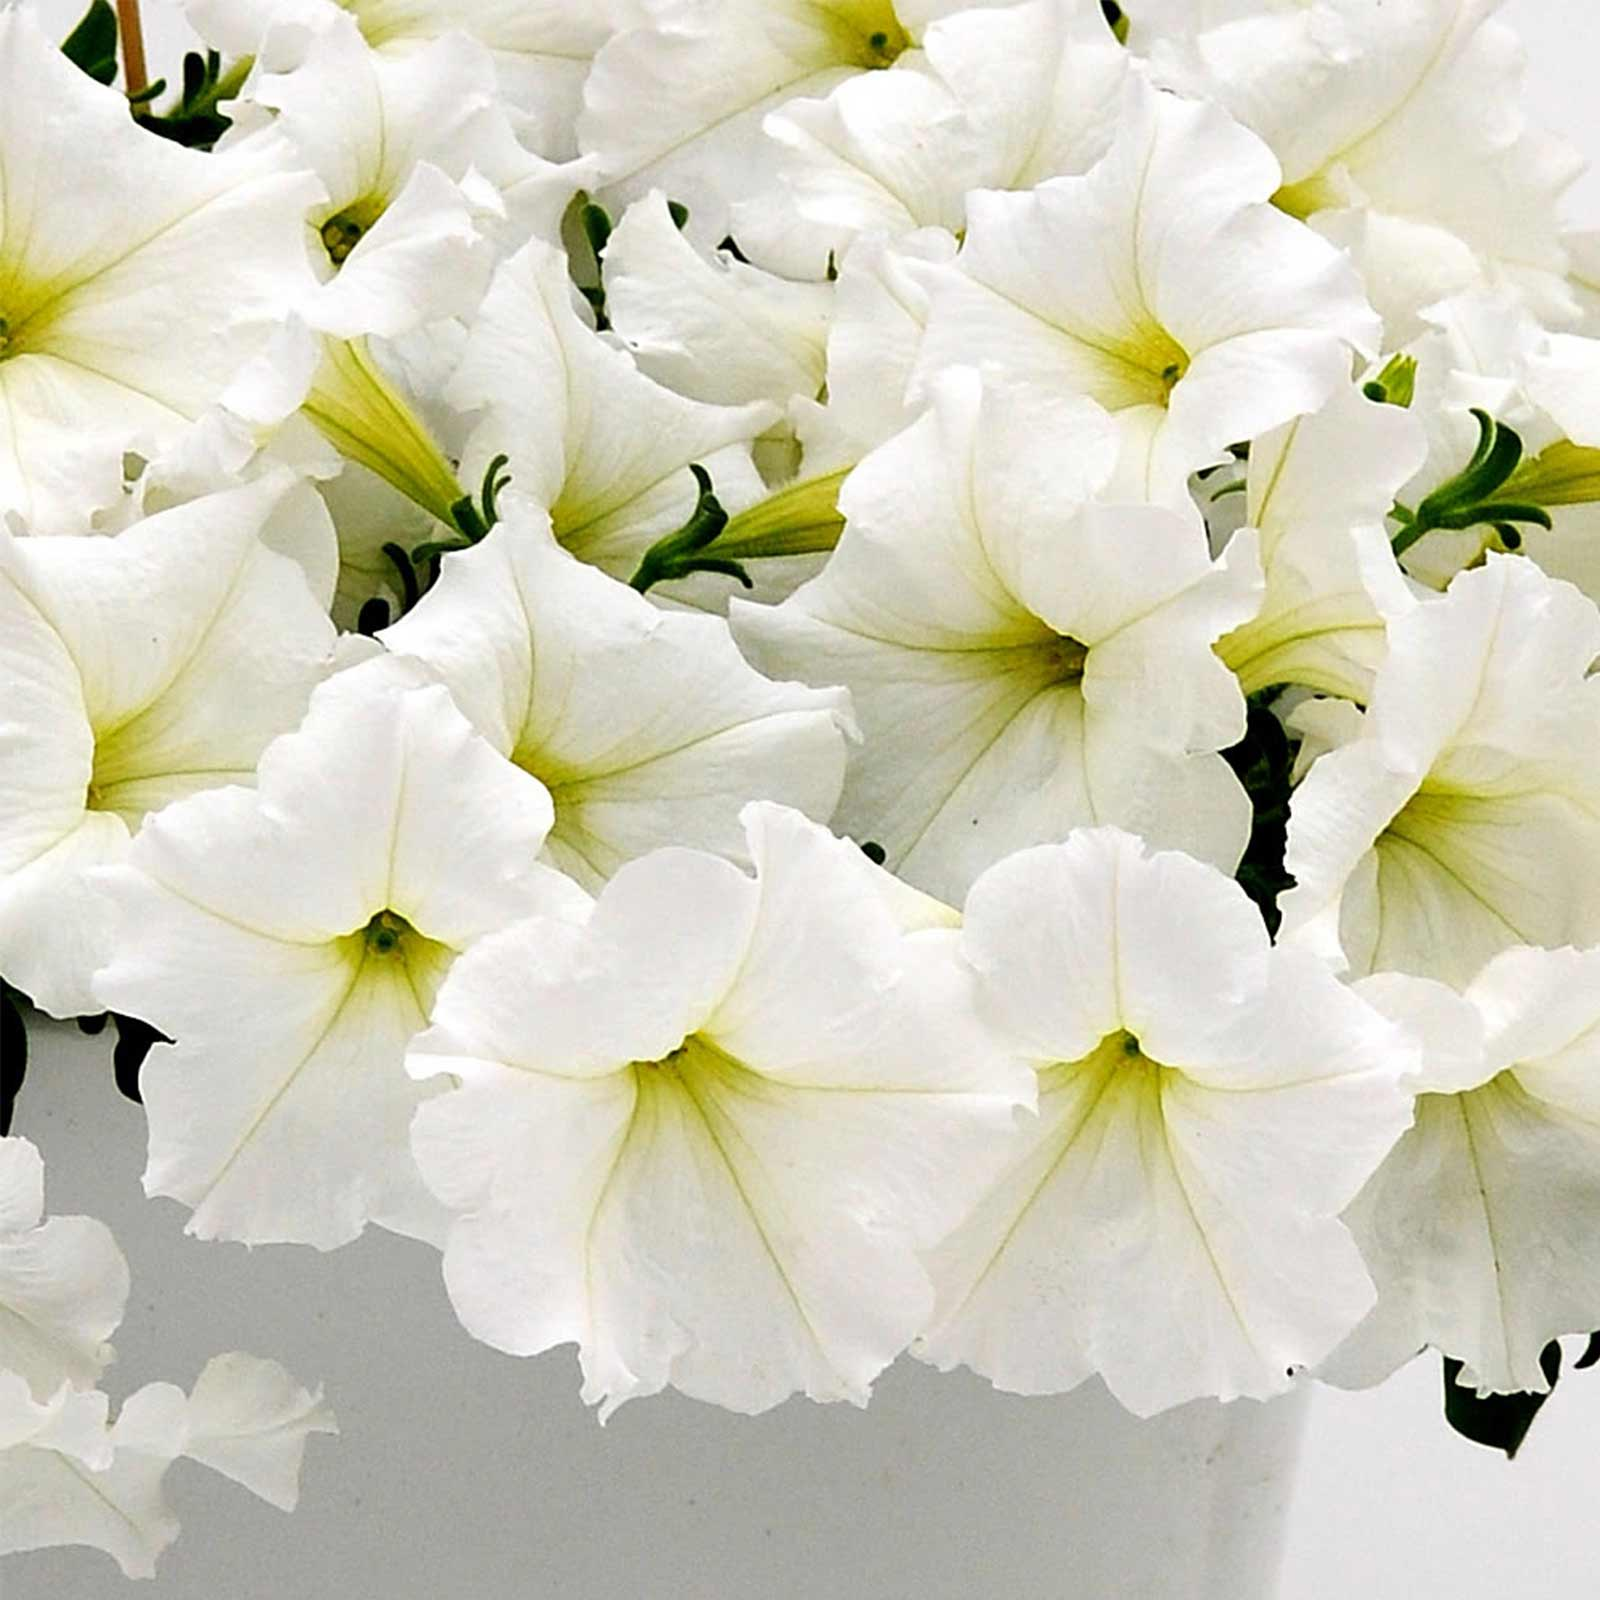 Petunia Easy Wave Flower Garden Seed Pelleted White Annual